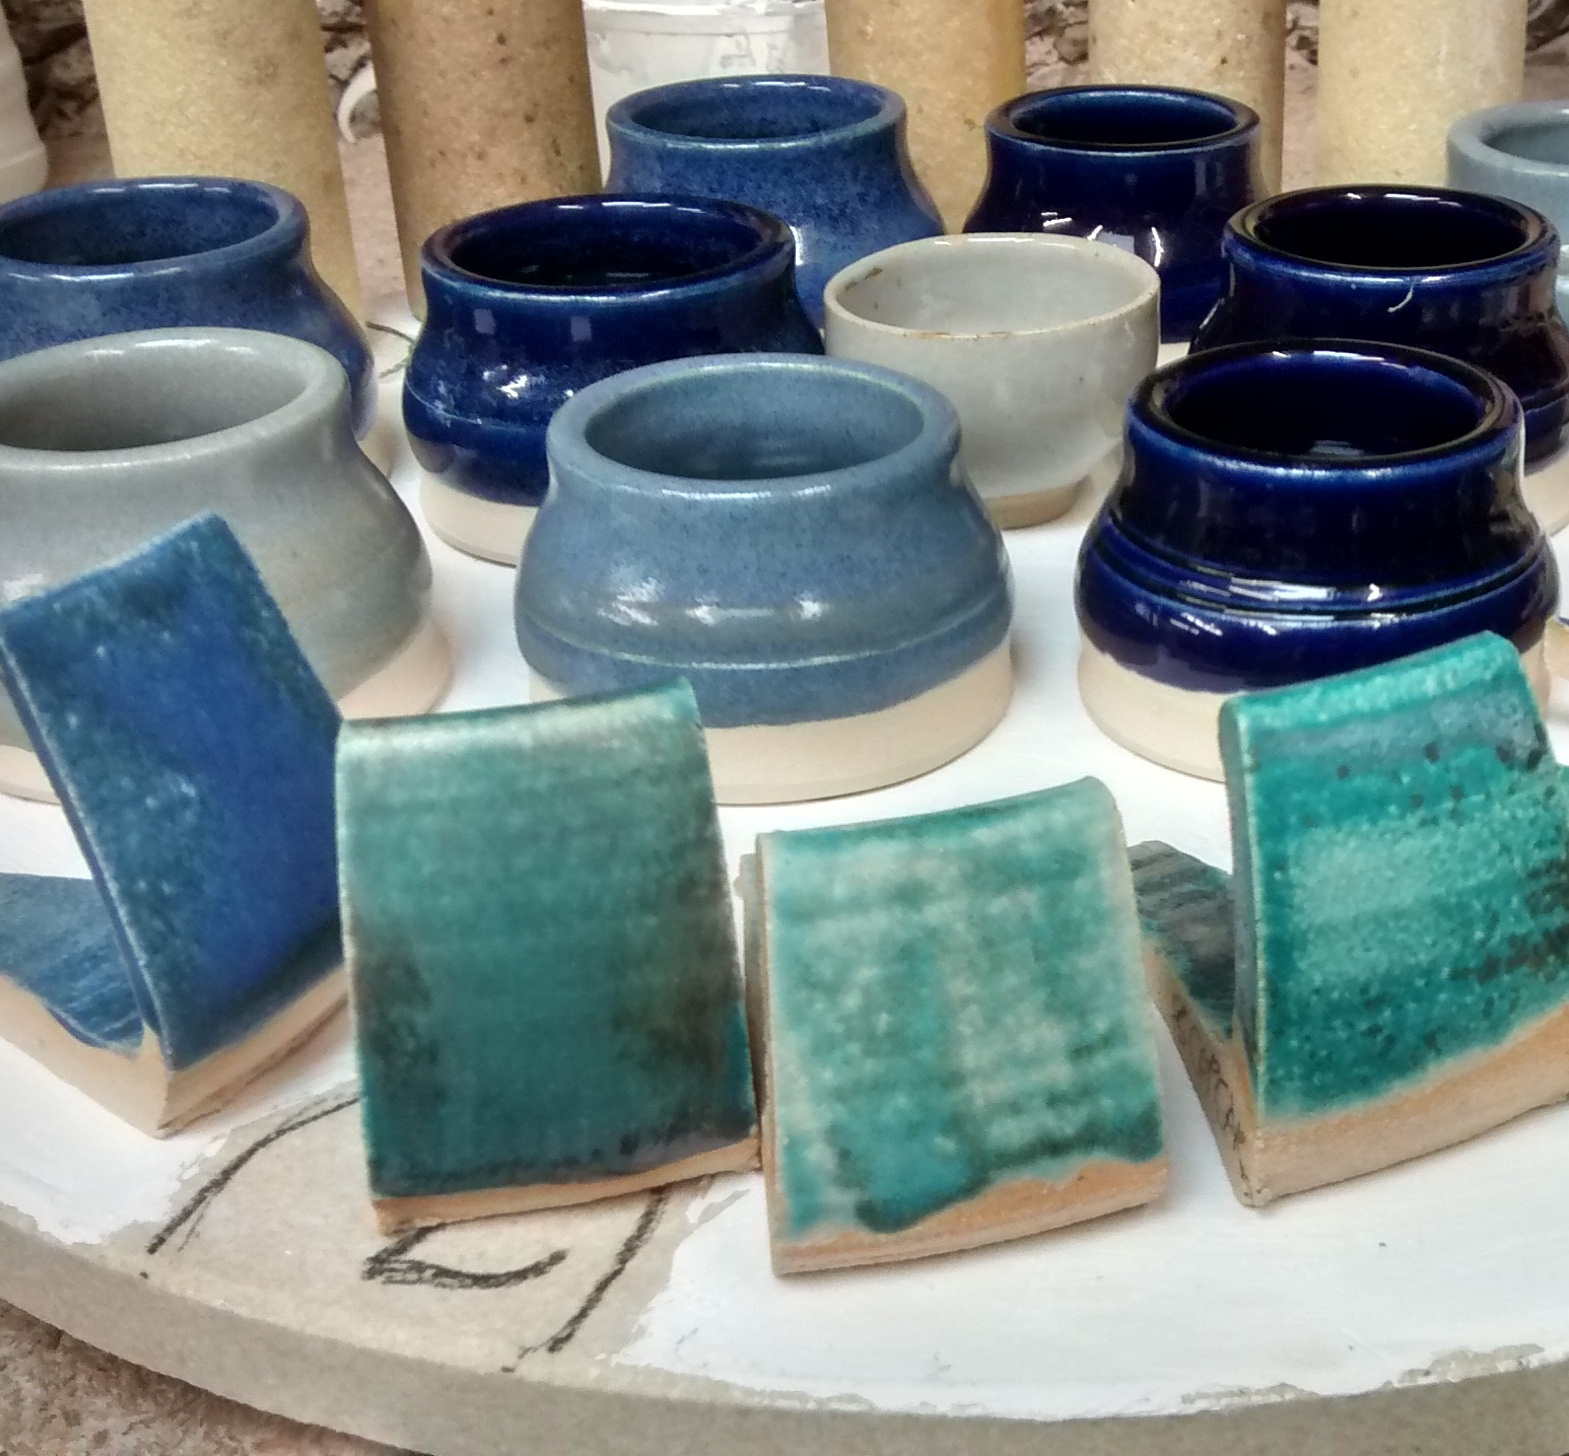 Glaze tests, Linda Bloomfield Glaze Course